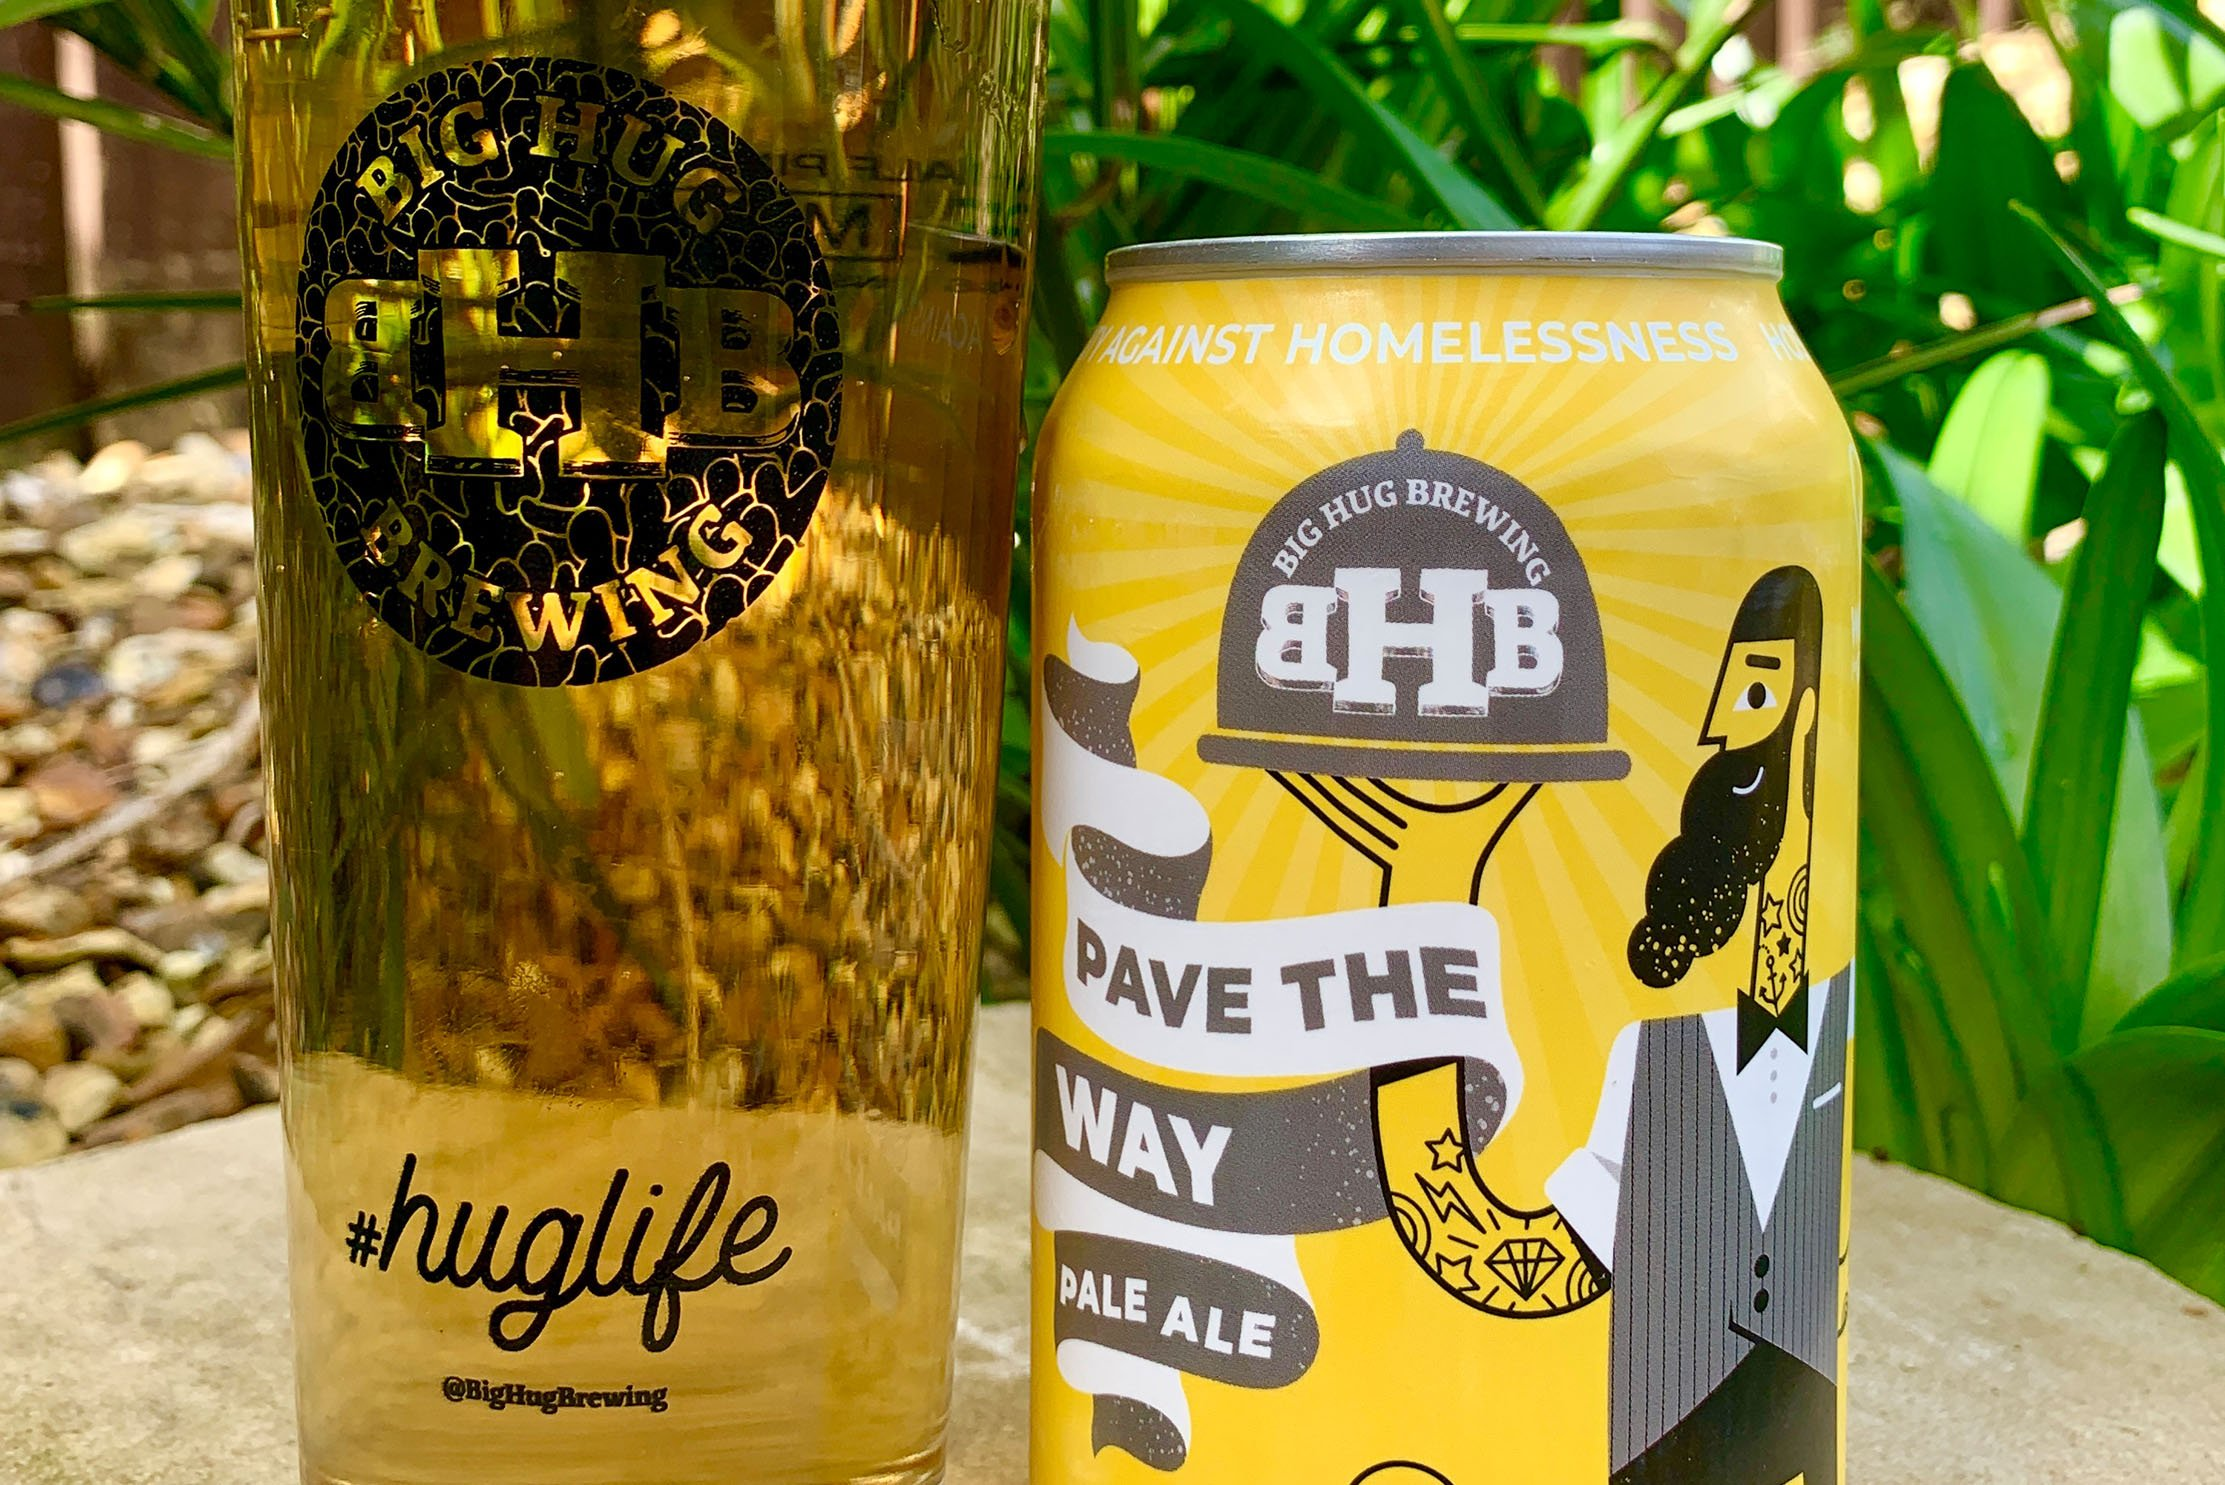 Brighton-based Big Hug Brewing has launched Pave The Way pale ale, to help support a national homeless charity